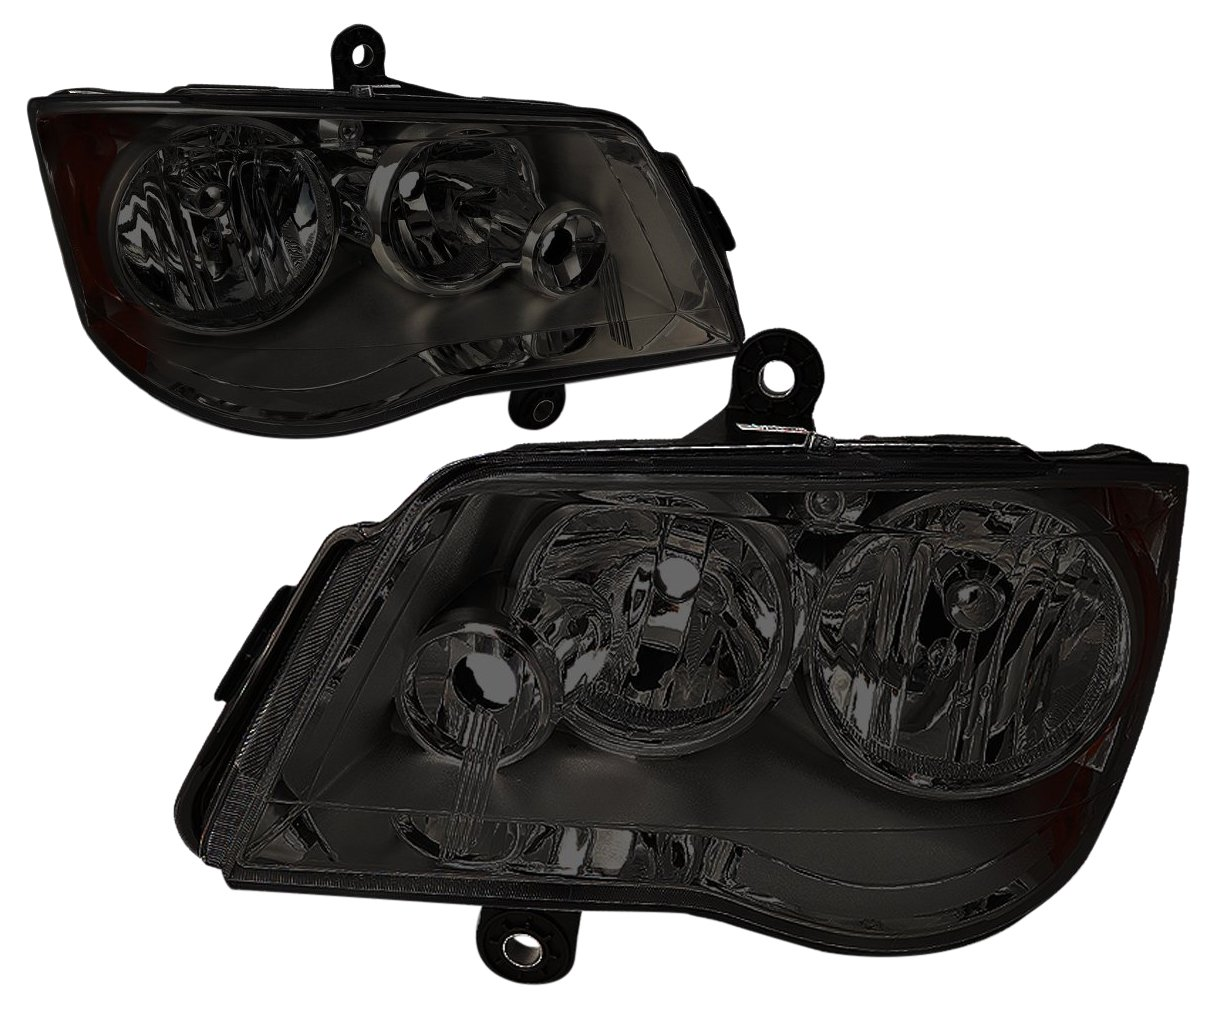 Driver And Passenger Side DNA MOTORING HL-OH-012-SM-AM Headlight Assembly